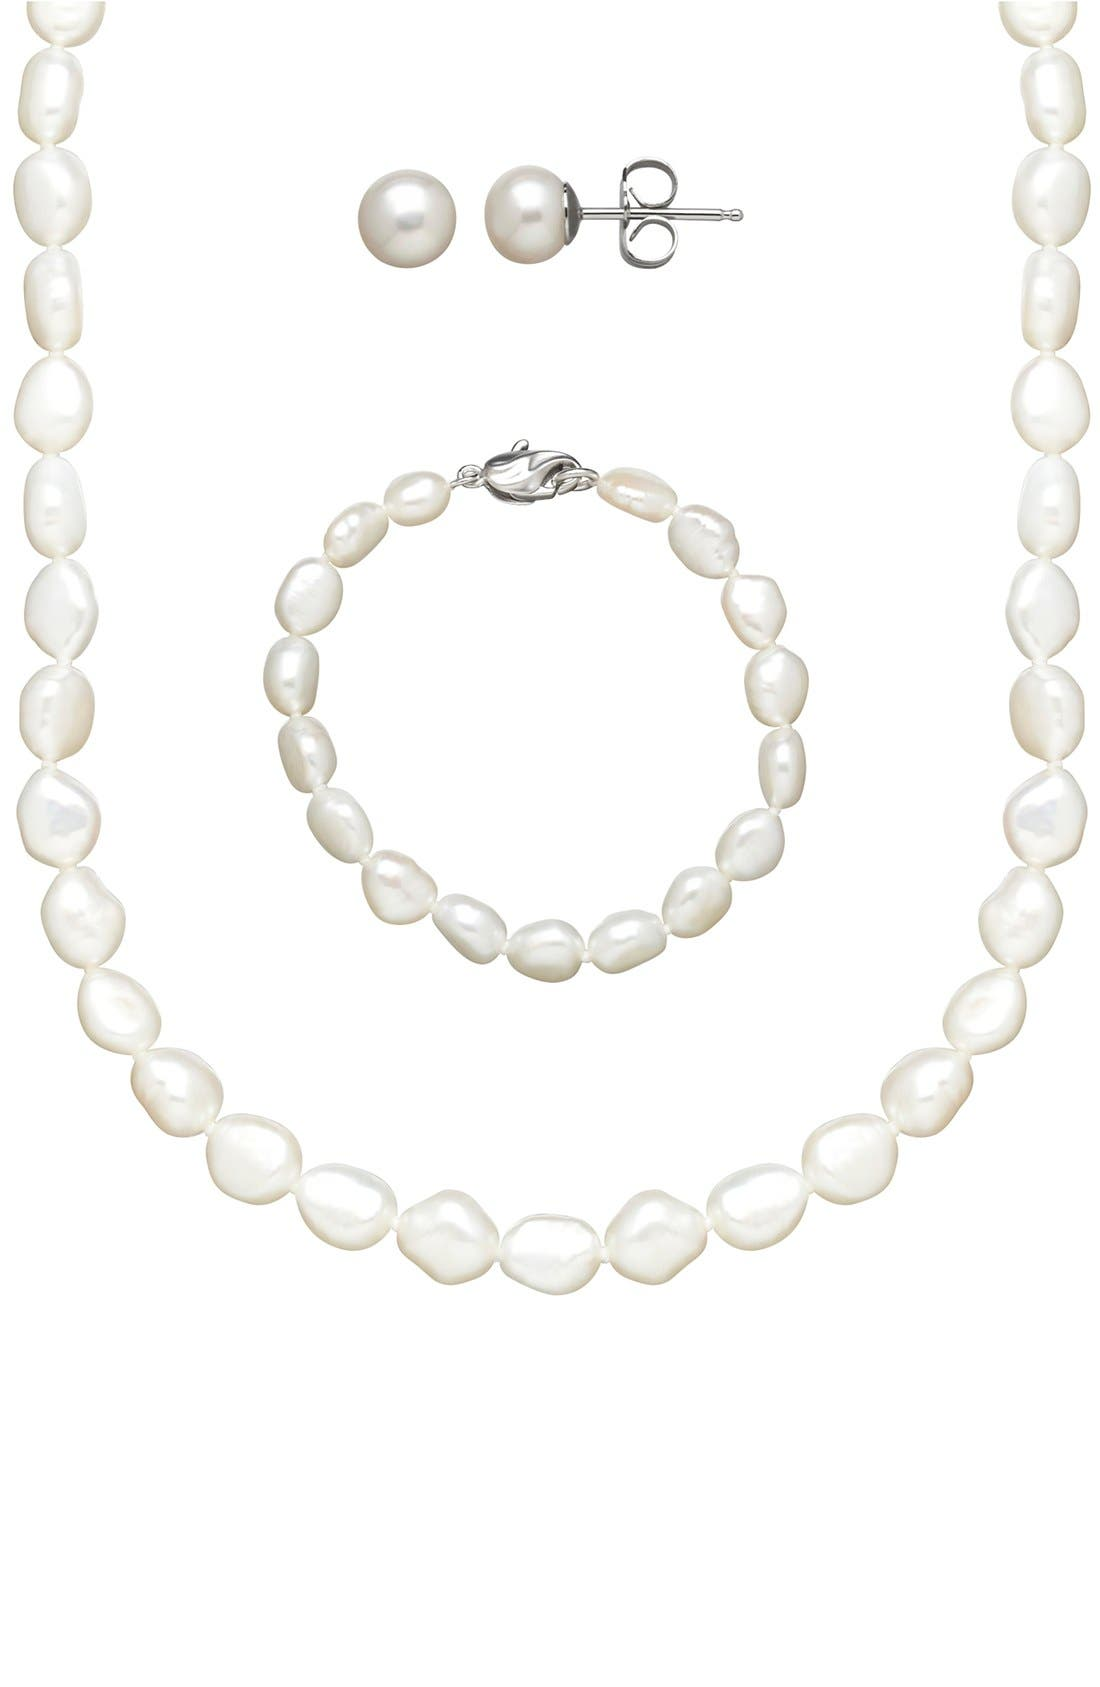 Main Image - HONORA Freshwater Pearl Necklace, Bracelet & Earrings (Girls)